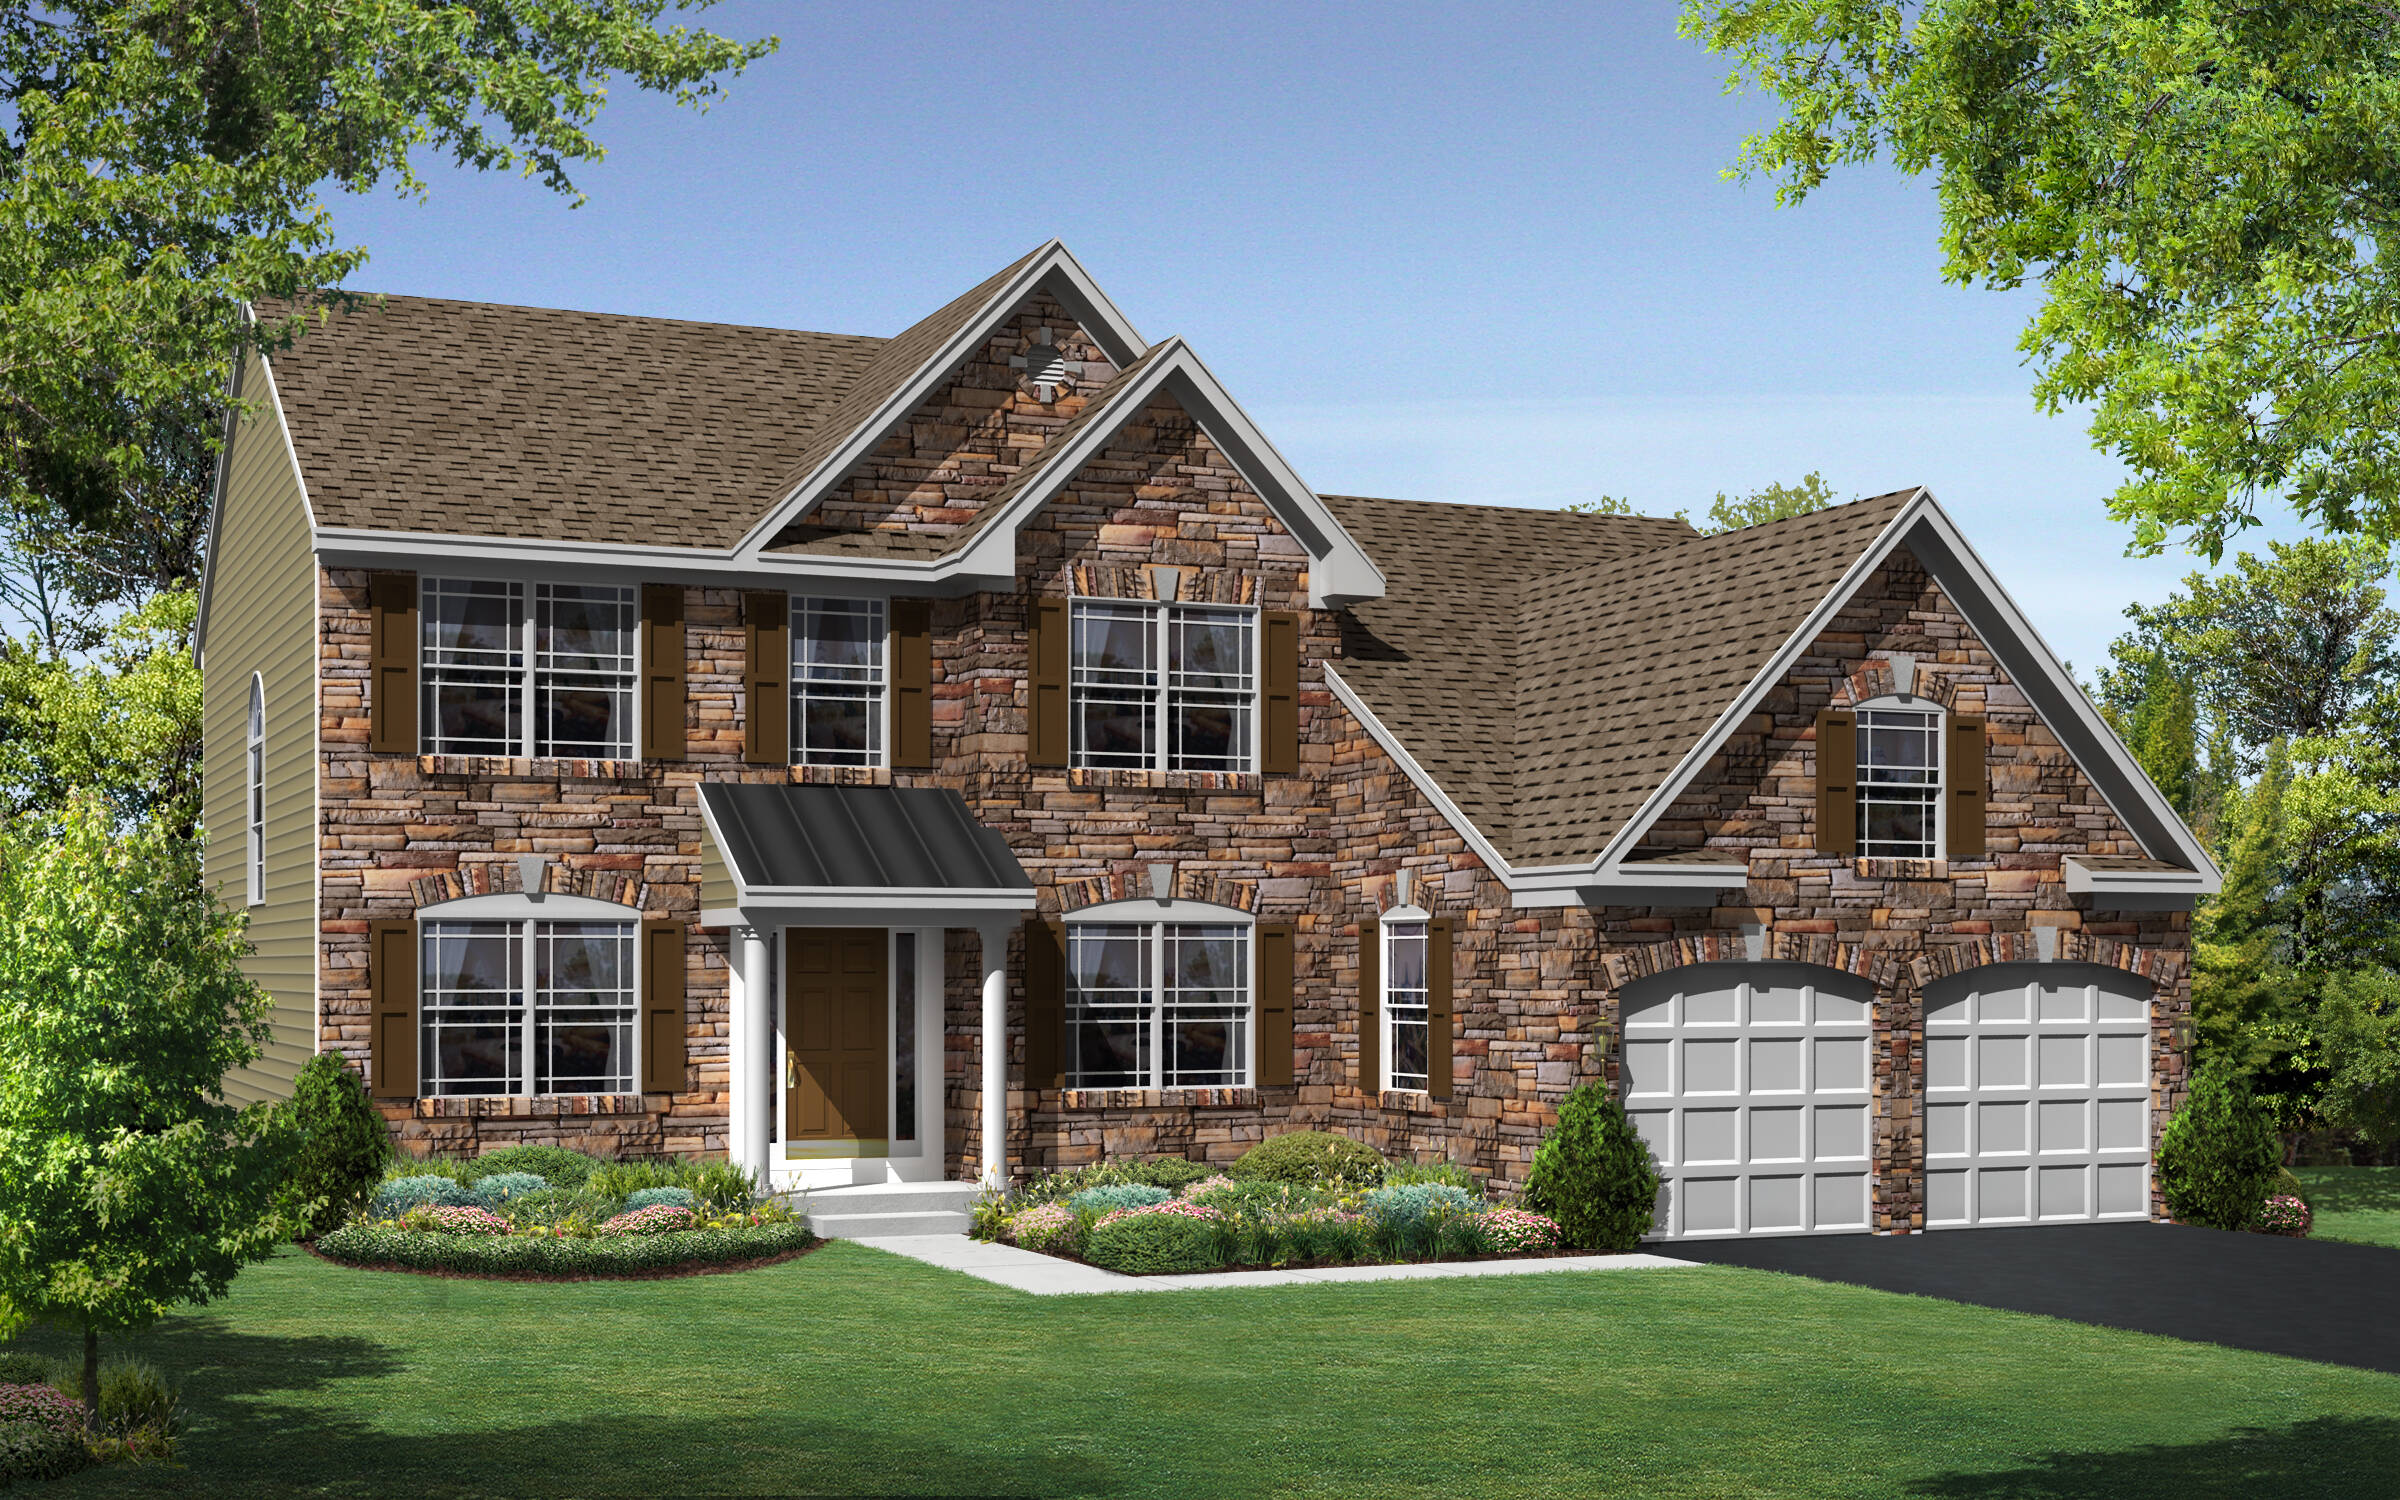 Maine II Colonial Stone elevation in lewes delaware